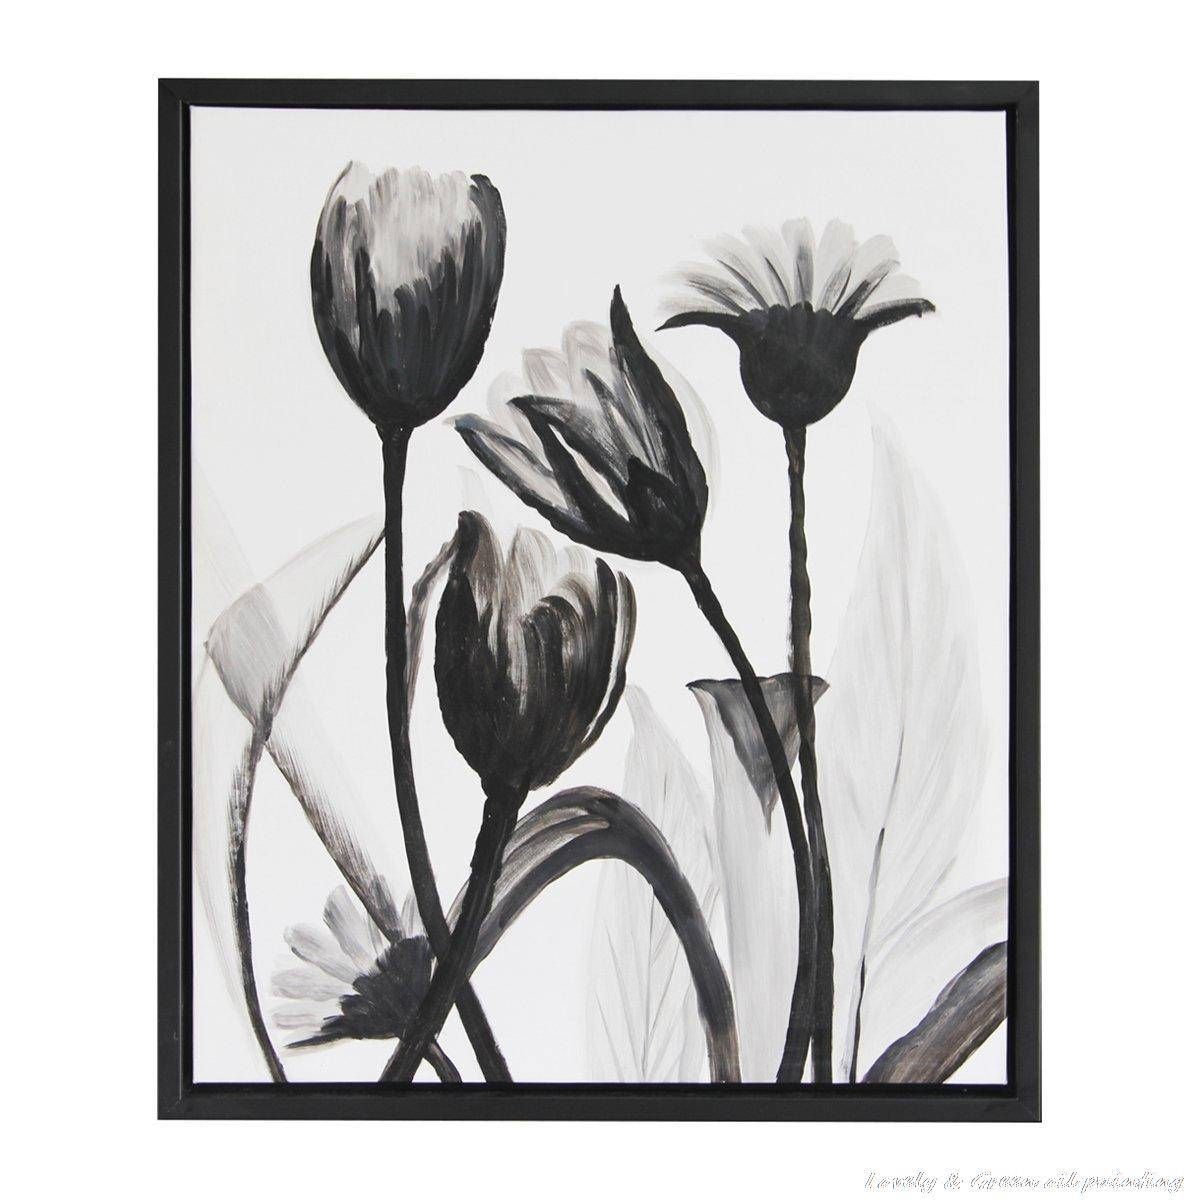 Black And White Flower Wall Art – Wall Murals Ideas Regarding Most Recent Cheap Black And White Wall Art (View 5 of 20)